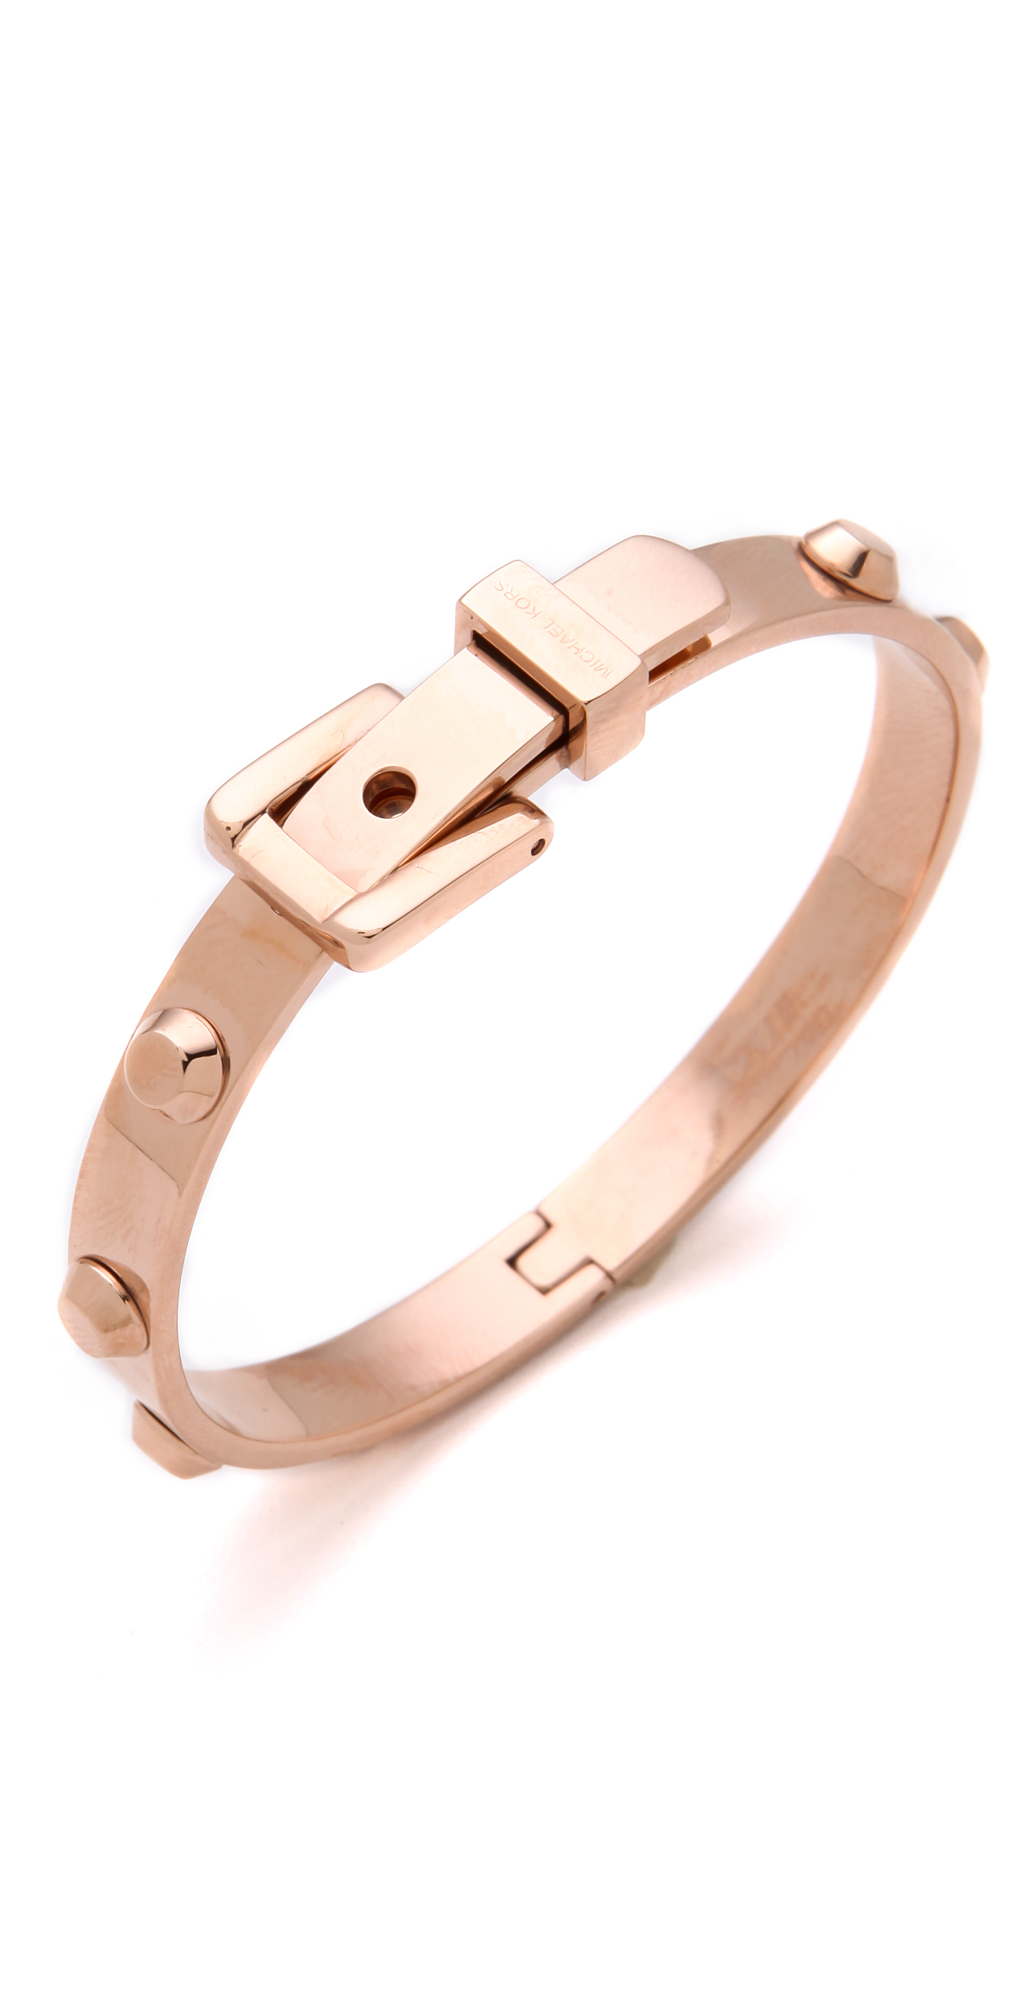 caa5e675b0aa Michael Kors Astor Buckle Bangle